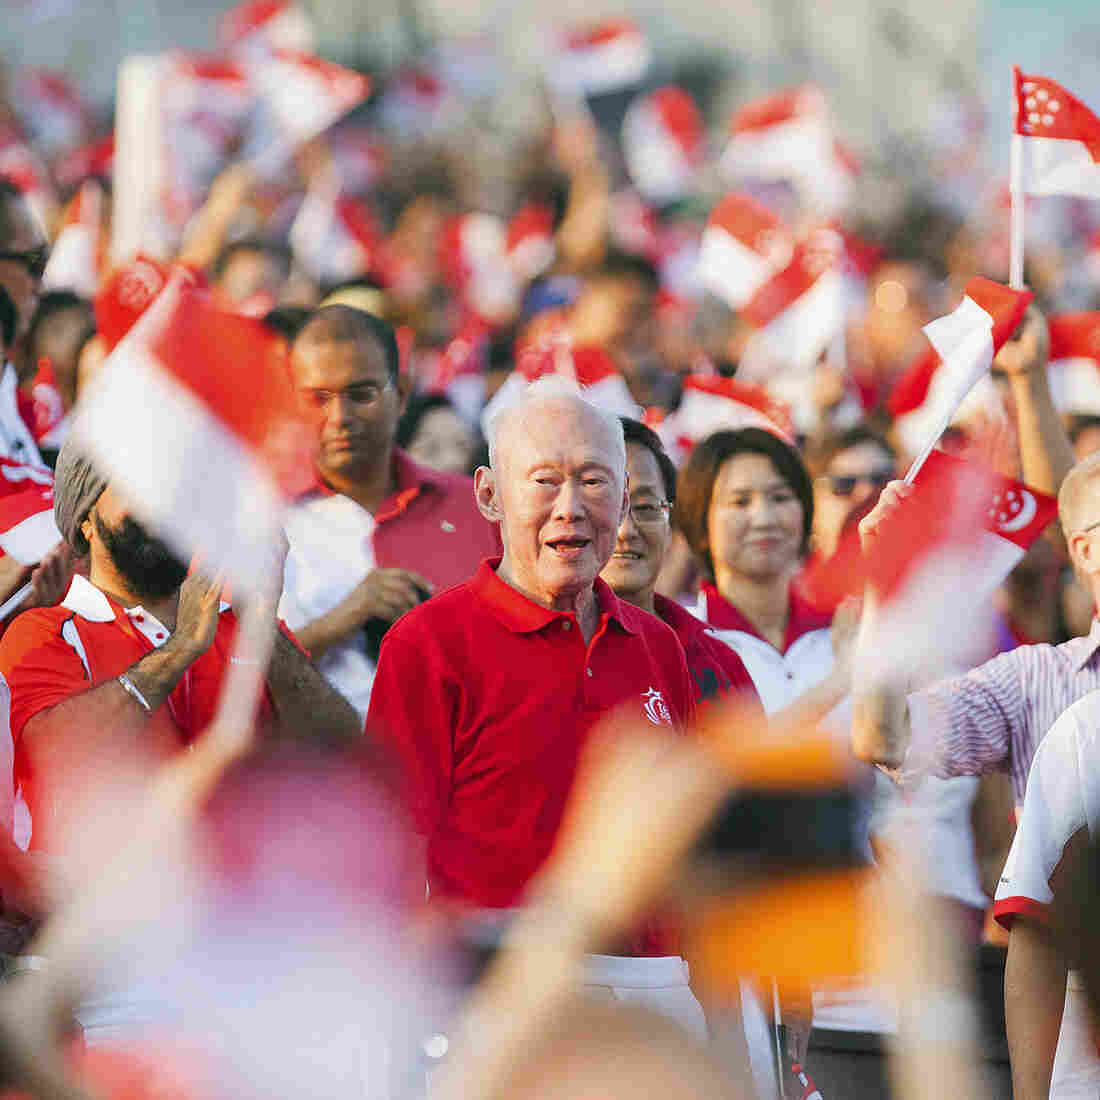 Founding Father Of Modern Singapore, Lee Kuan Yew, Dies At 91